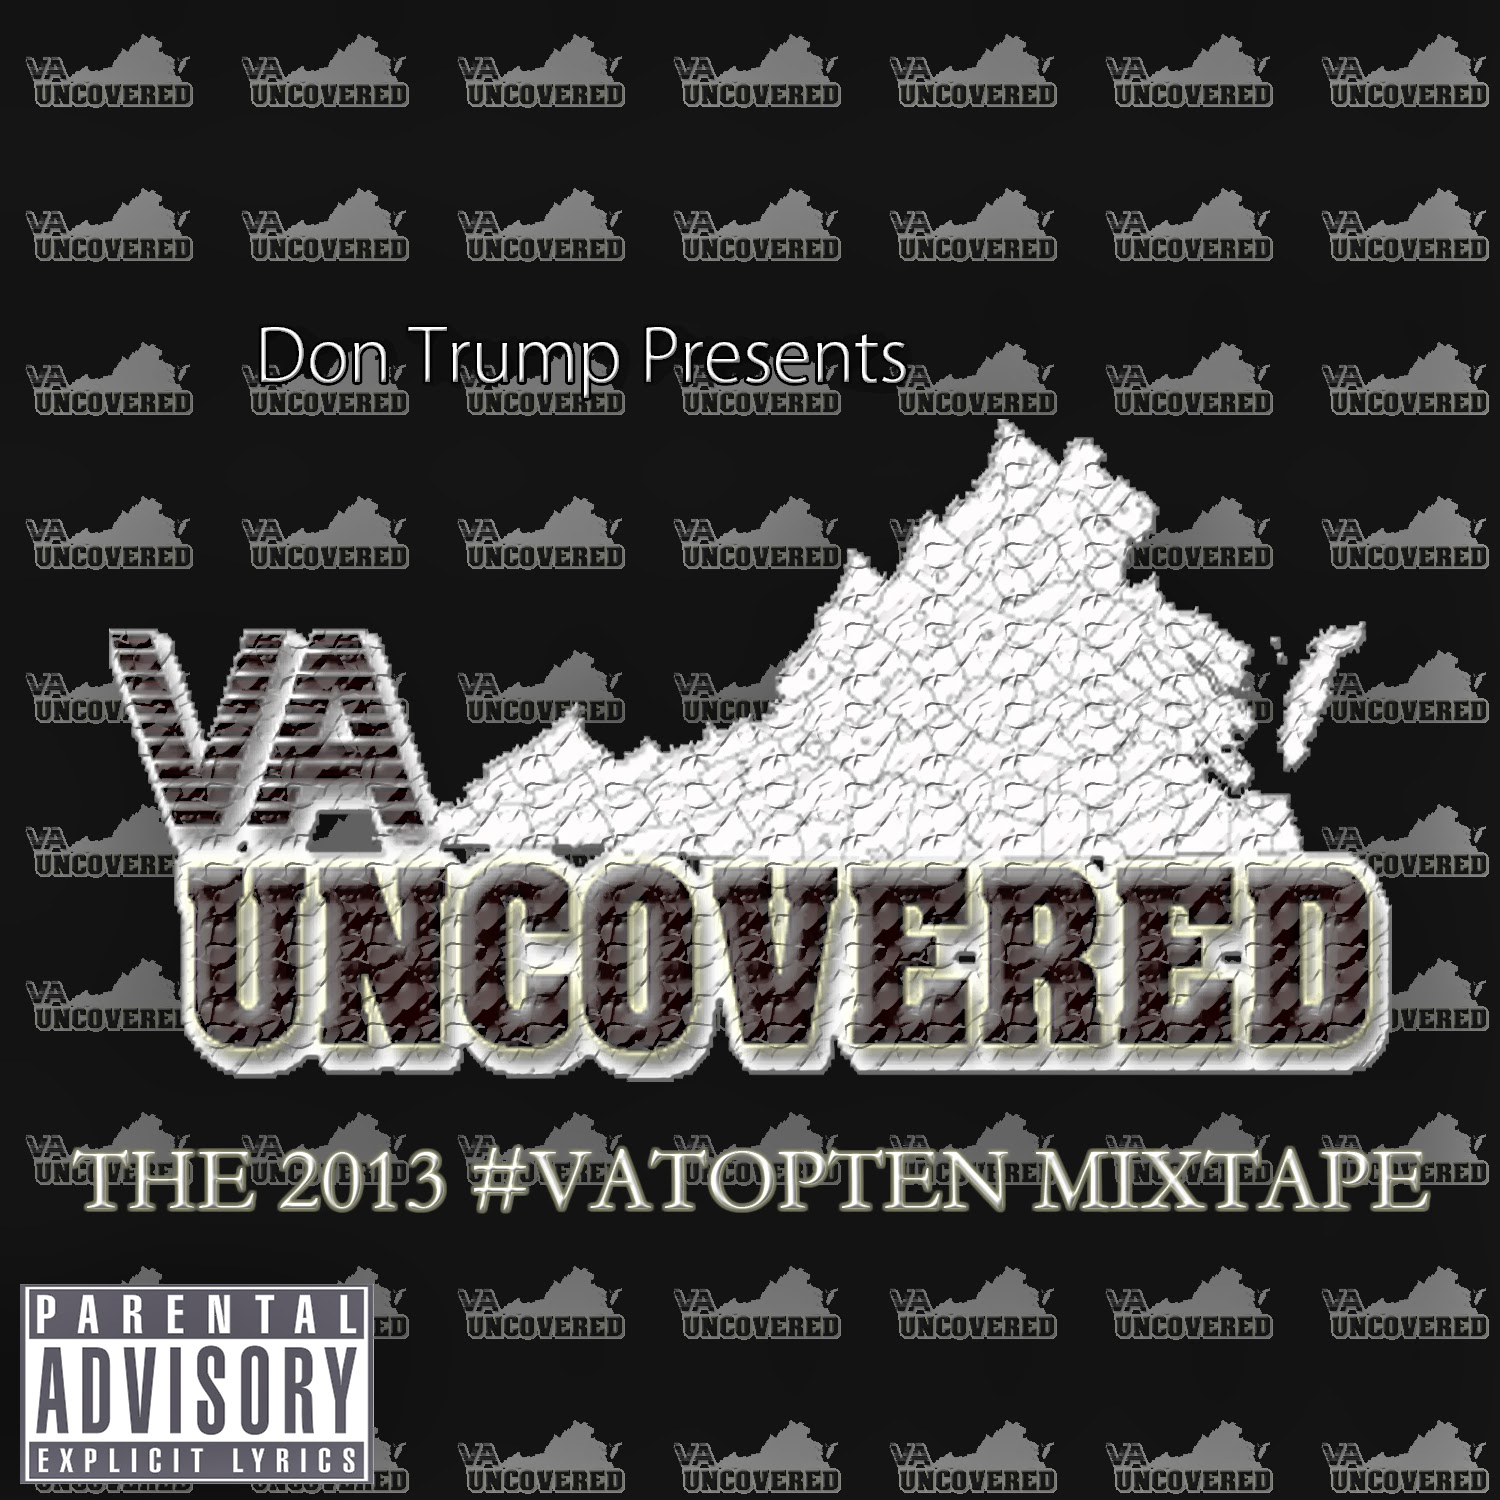 http://www.datpiff.com/VA-UNCOVERED-The-2013-VATopTen-Mixtape.572496.html